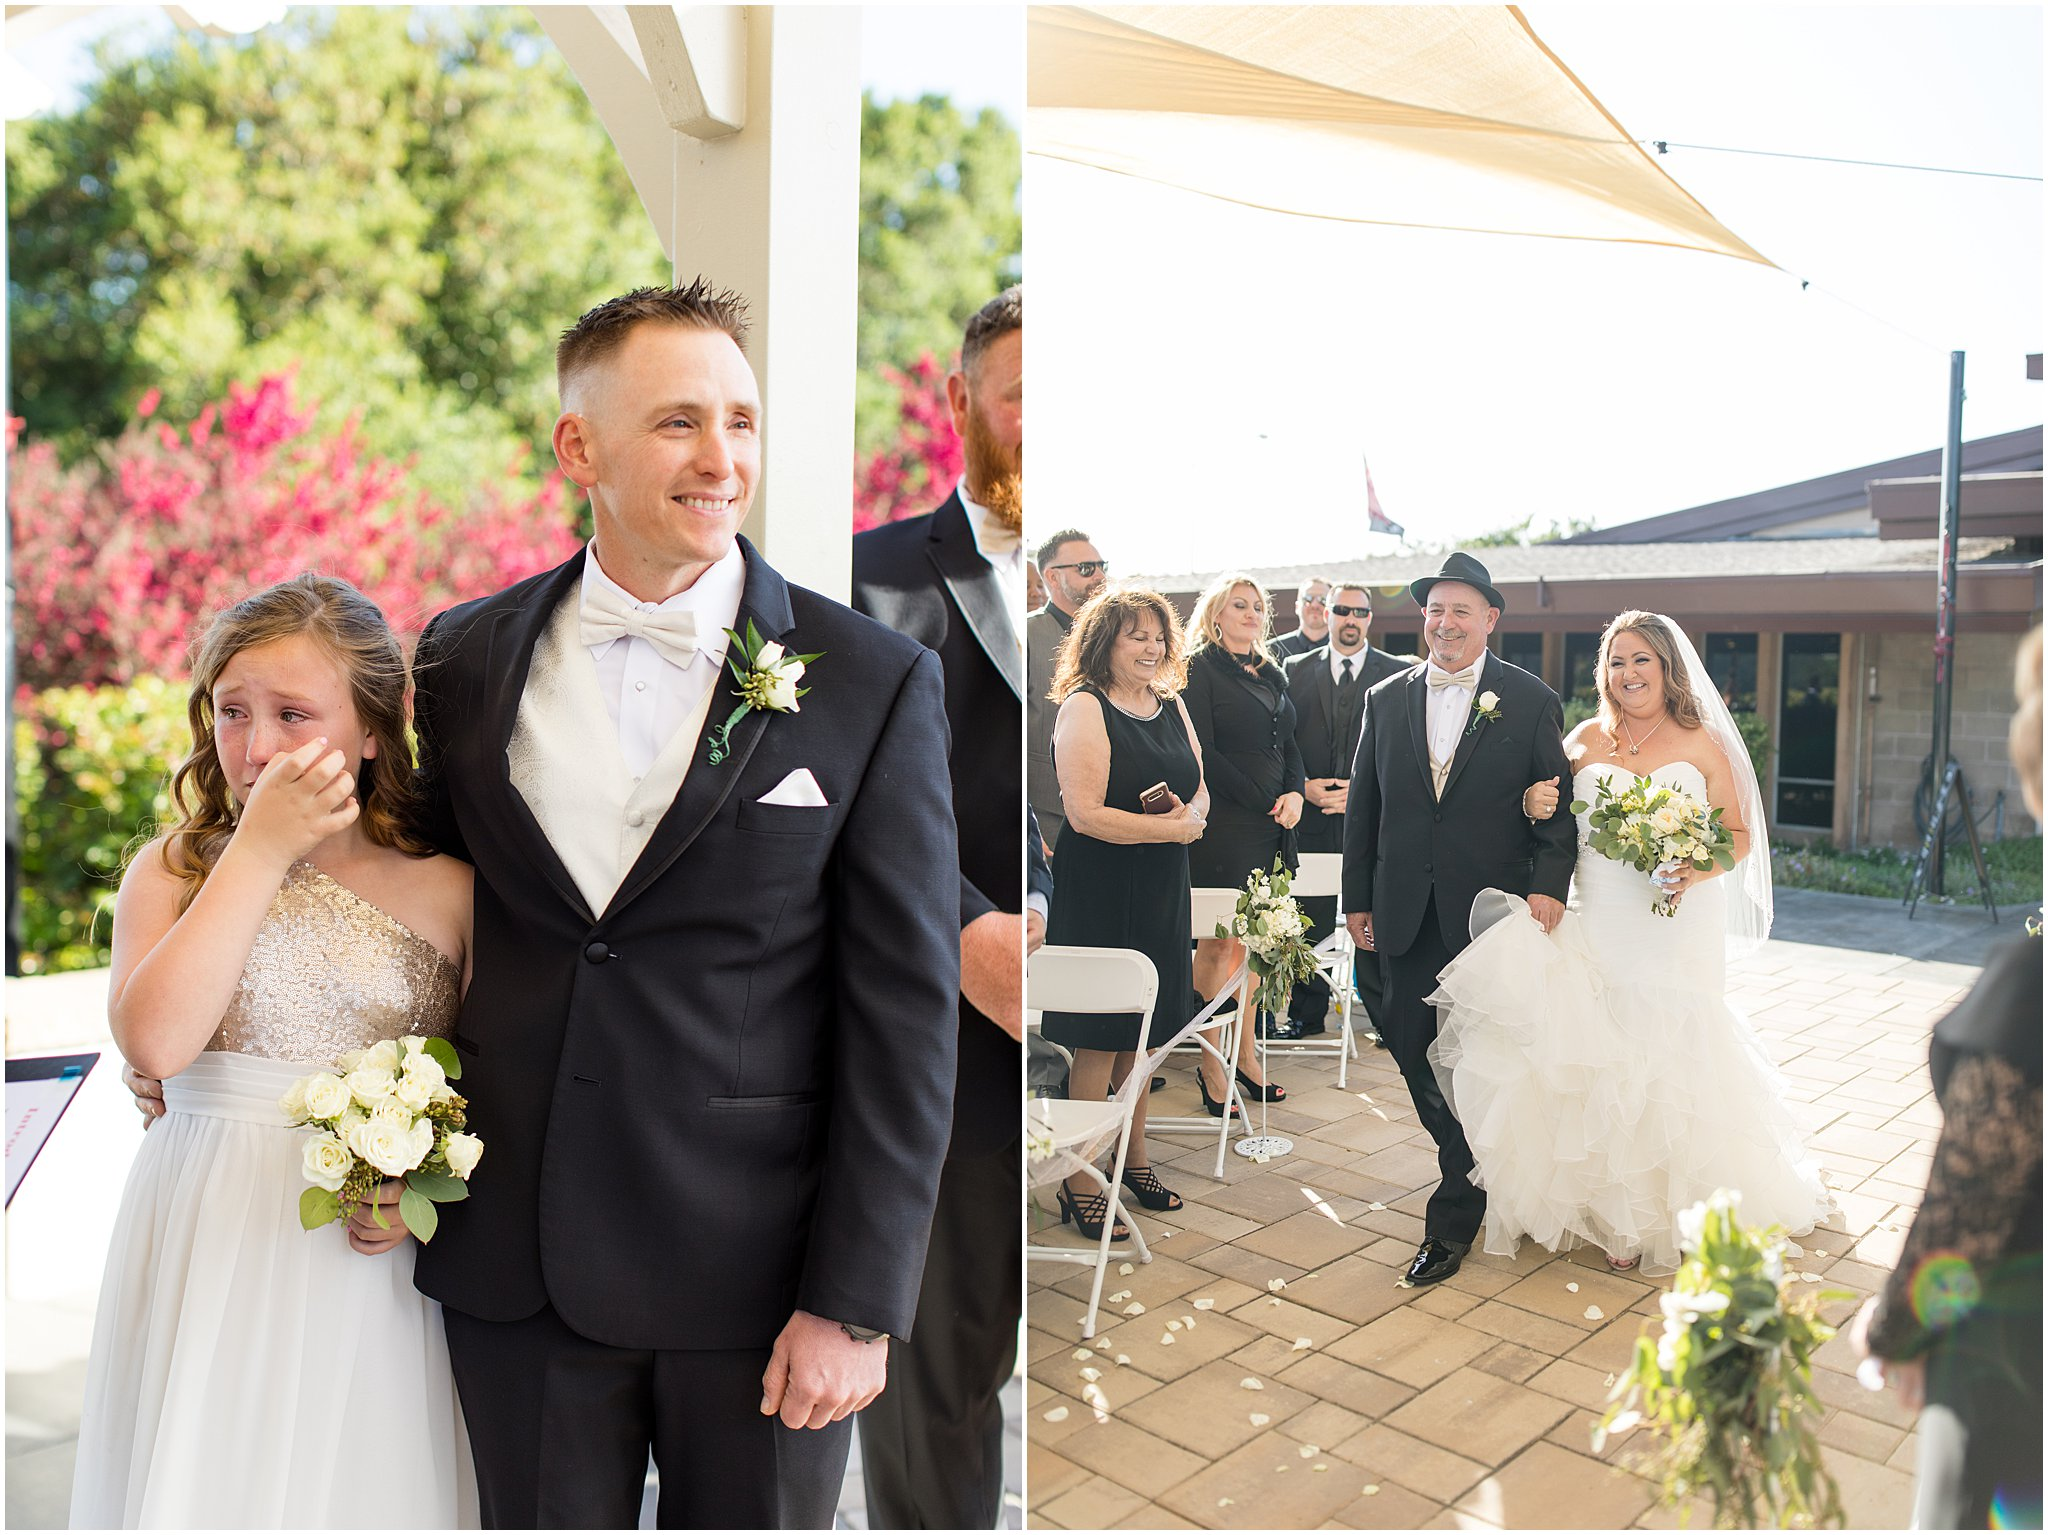 2019 gilroy lodge on the hill wedding angela sue photography_0024.jpg